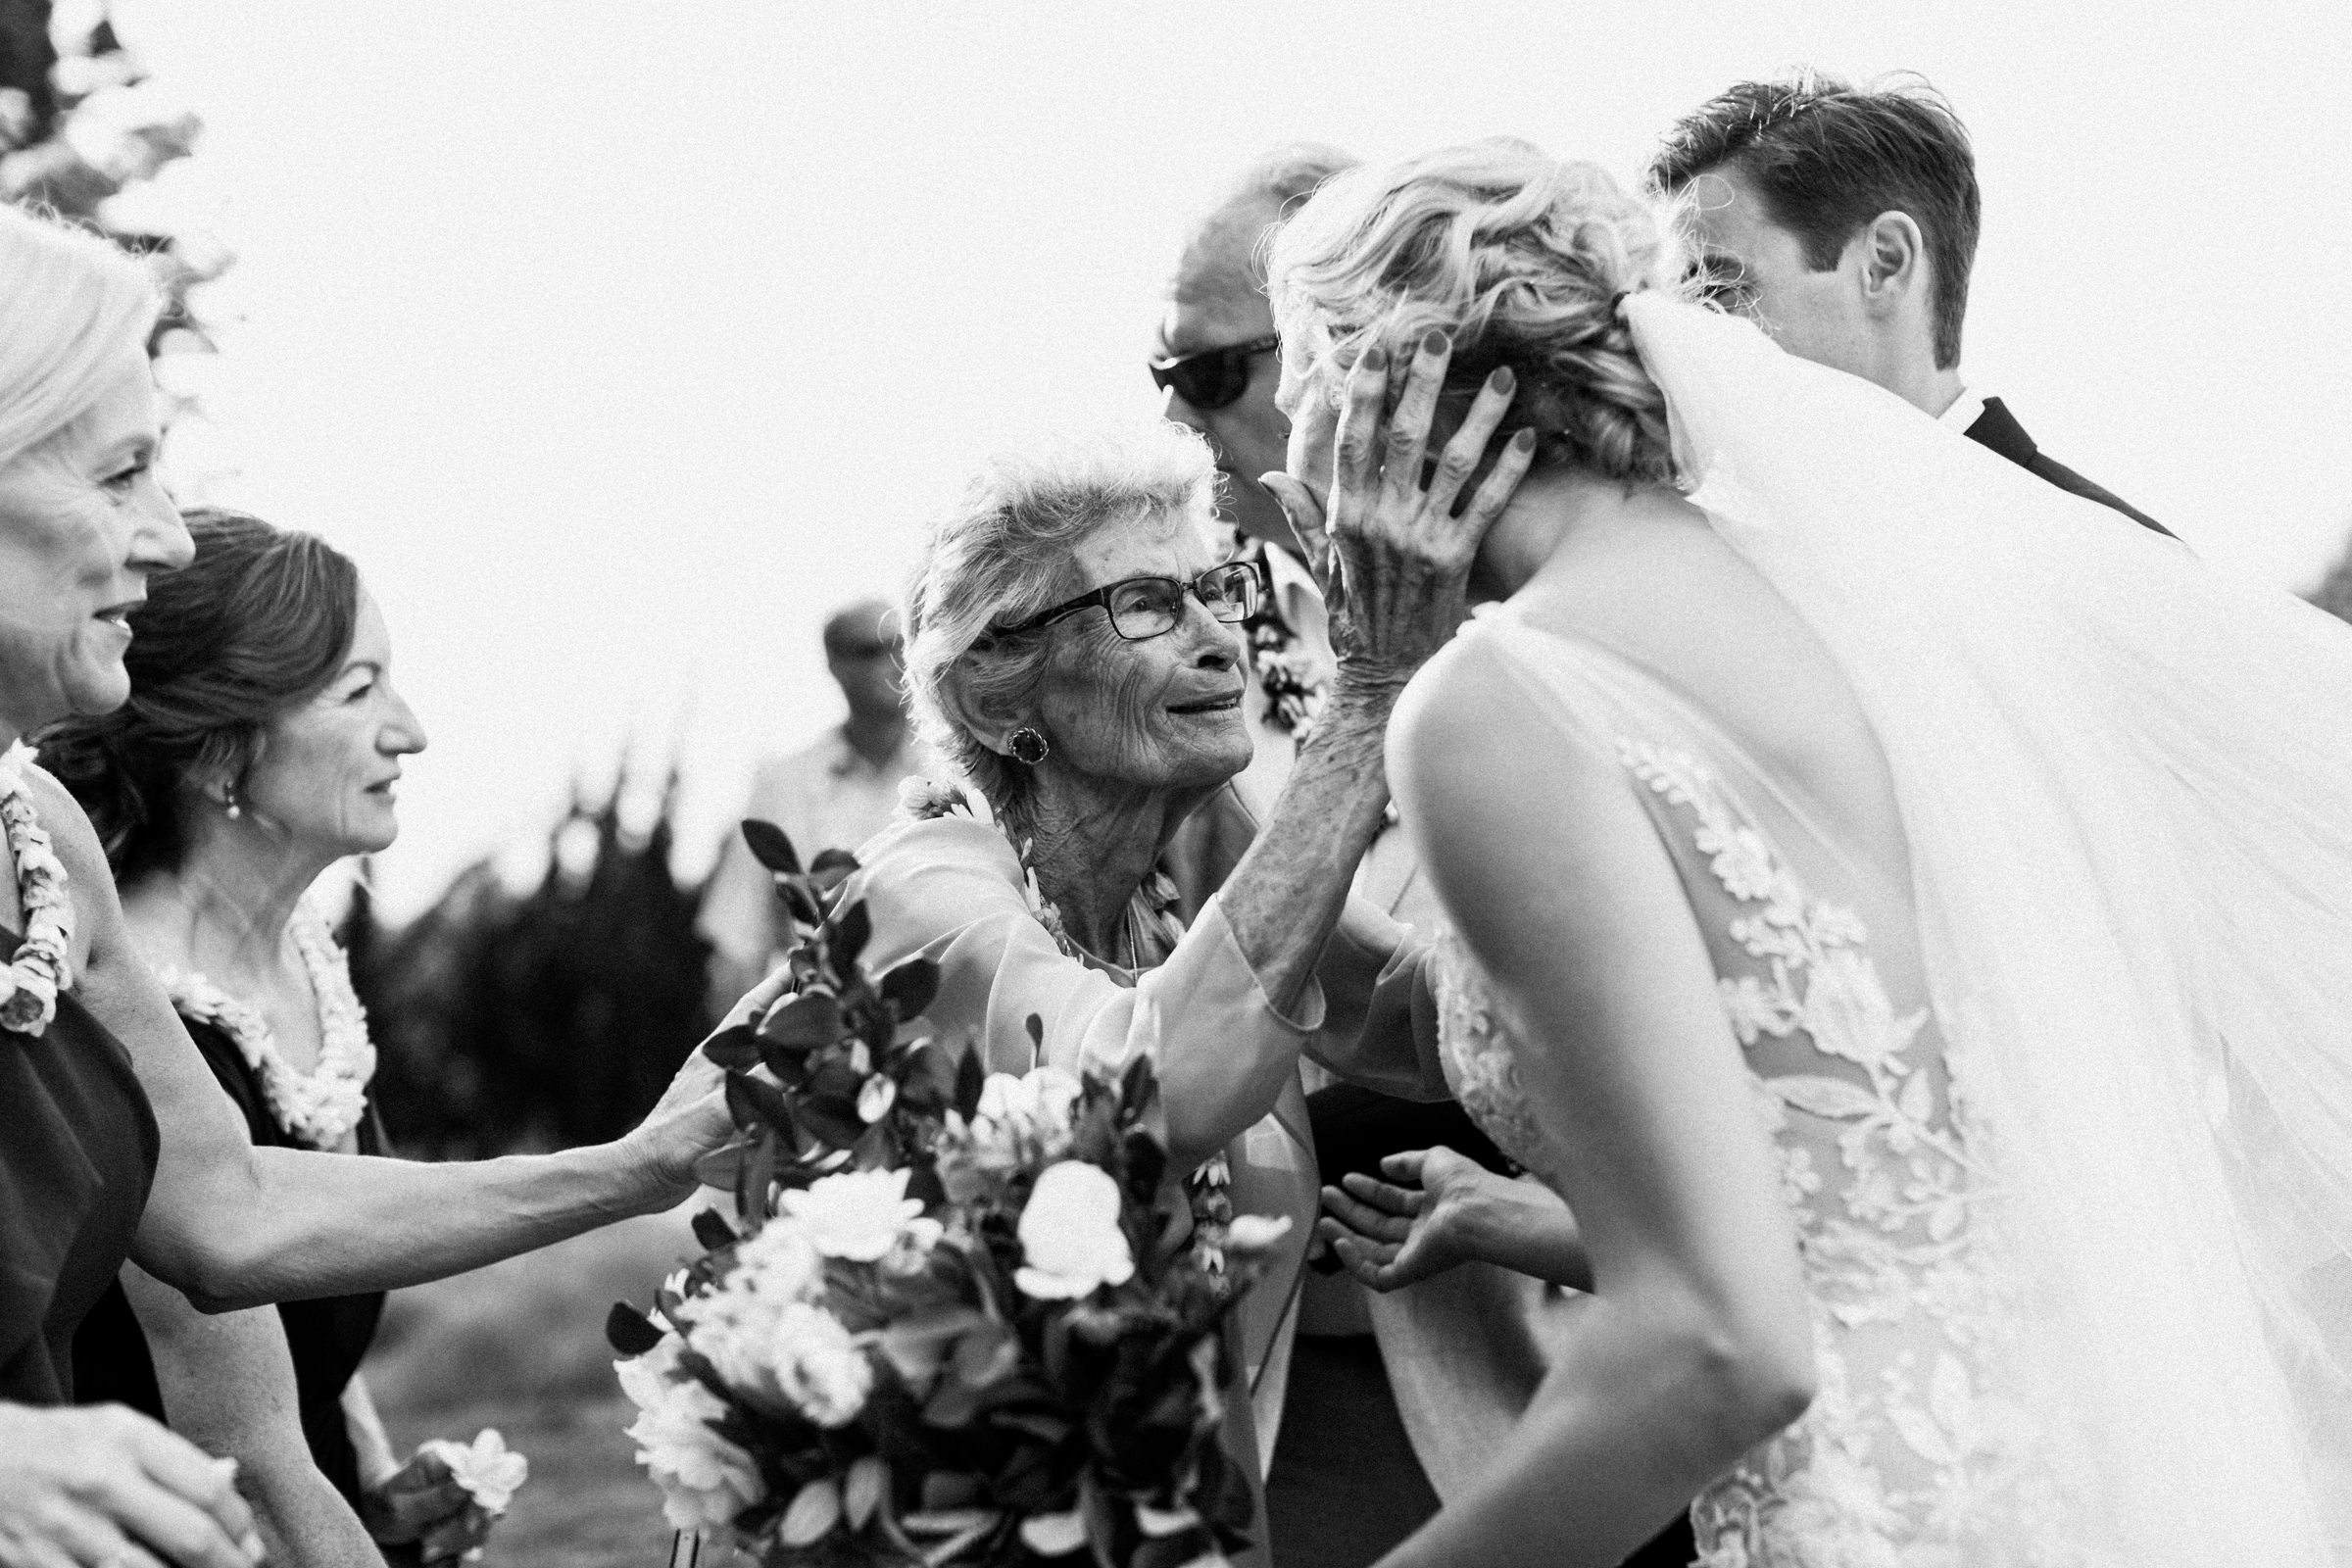 Grandmother embraces bride - photo by Melia Lucida